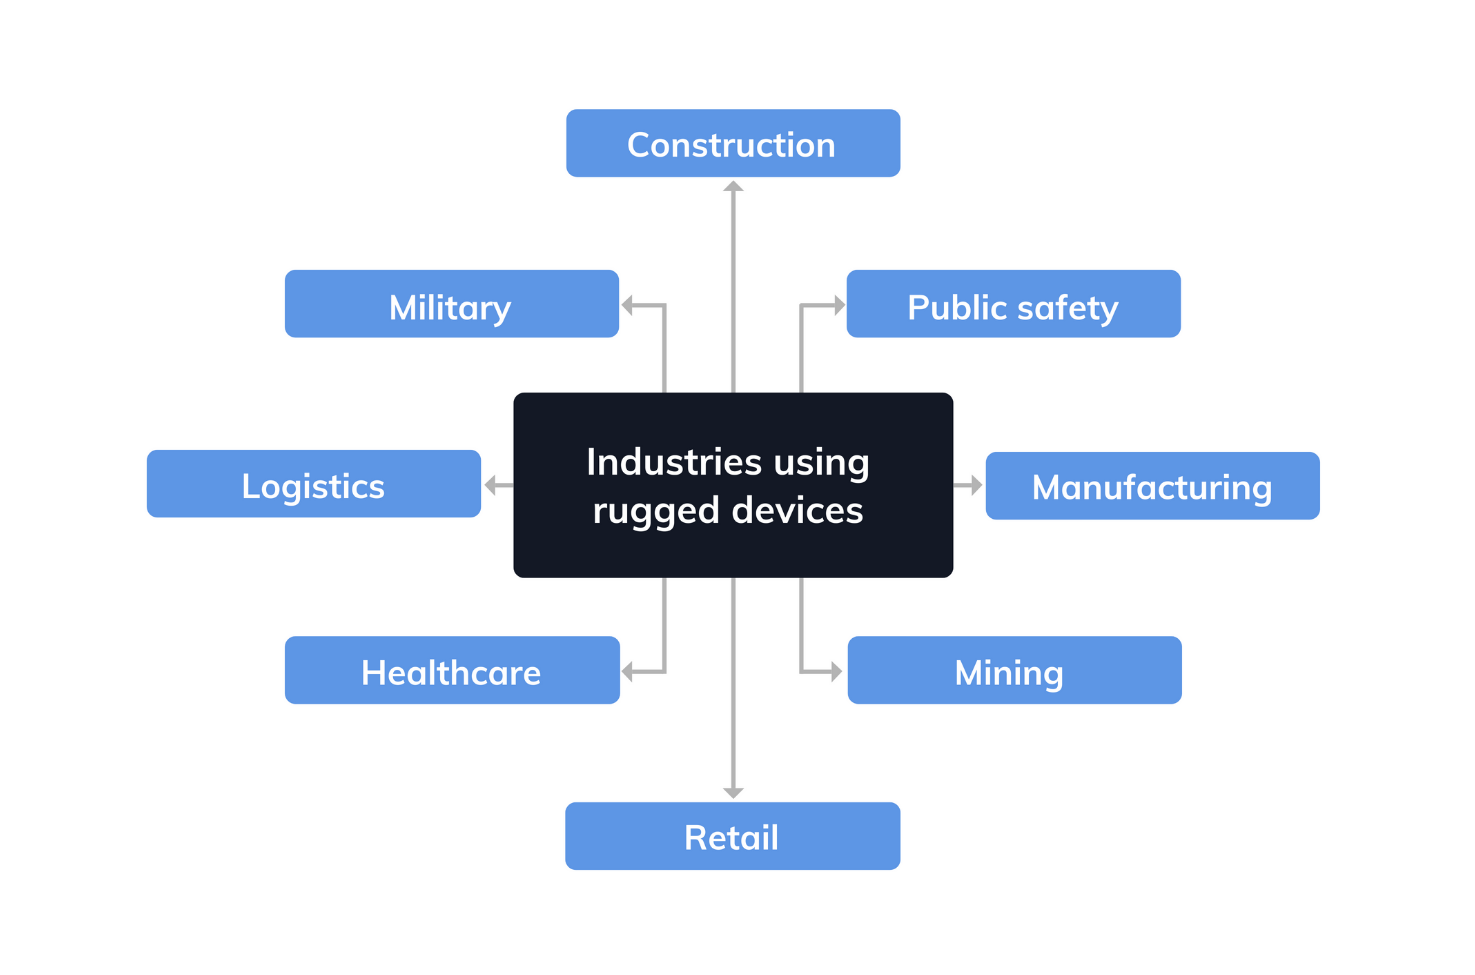 Various industries where rugged devices are used